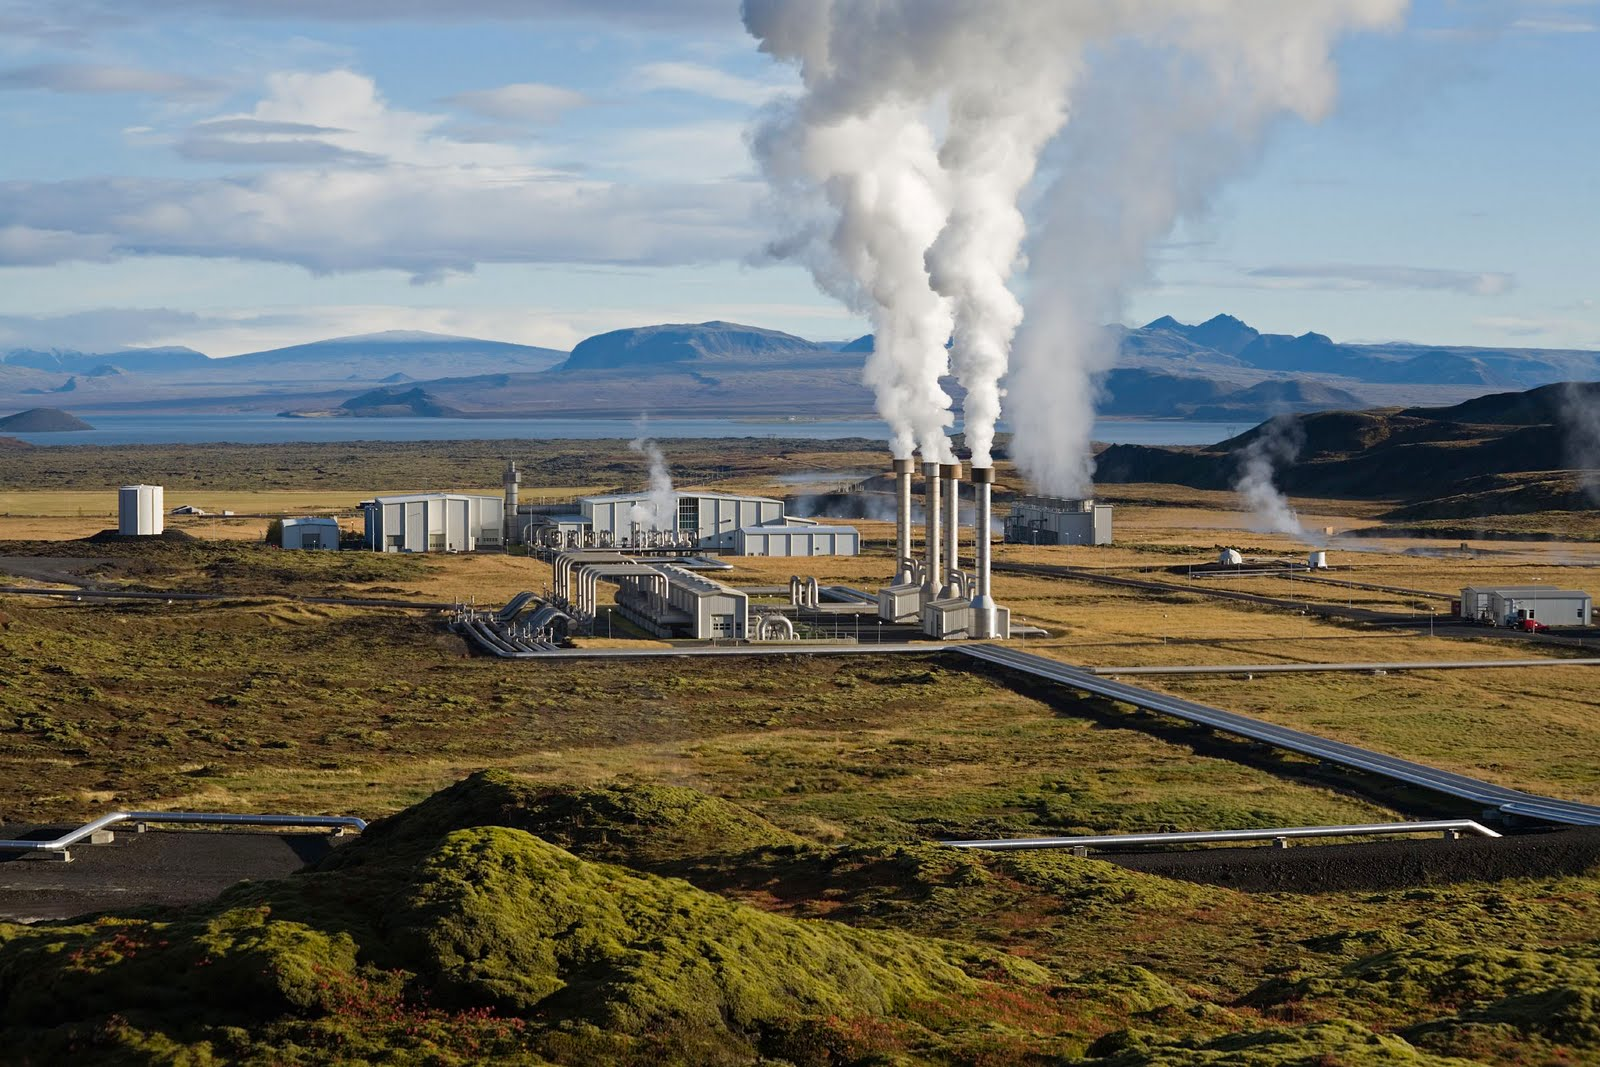 Geothermal Power Plant Animation Geothermal Power Plant in